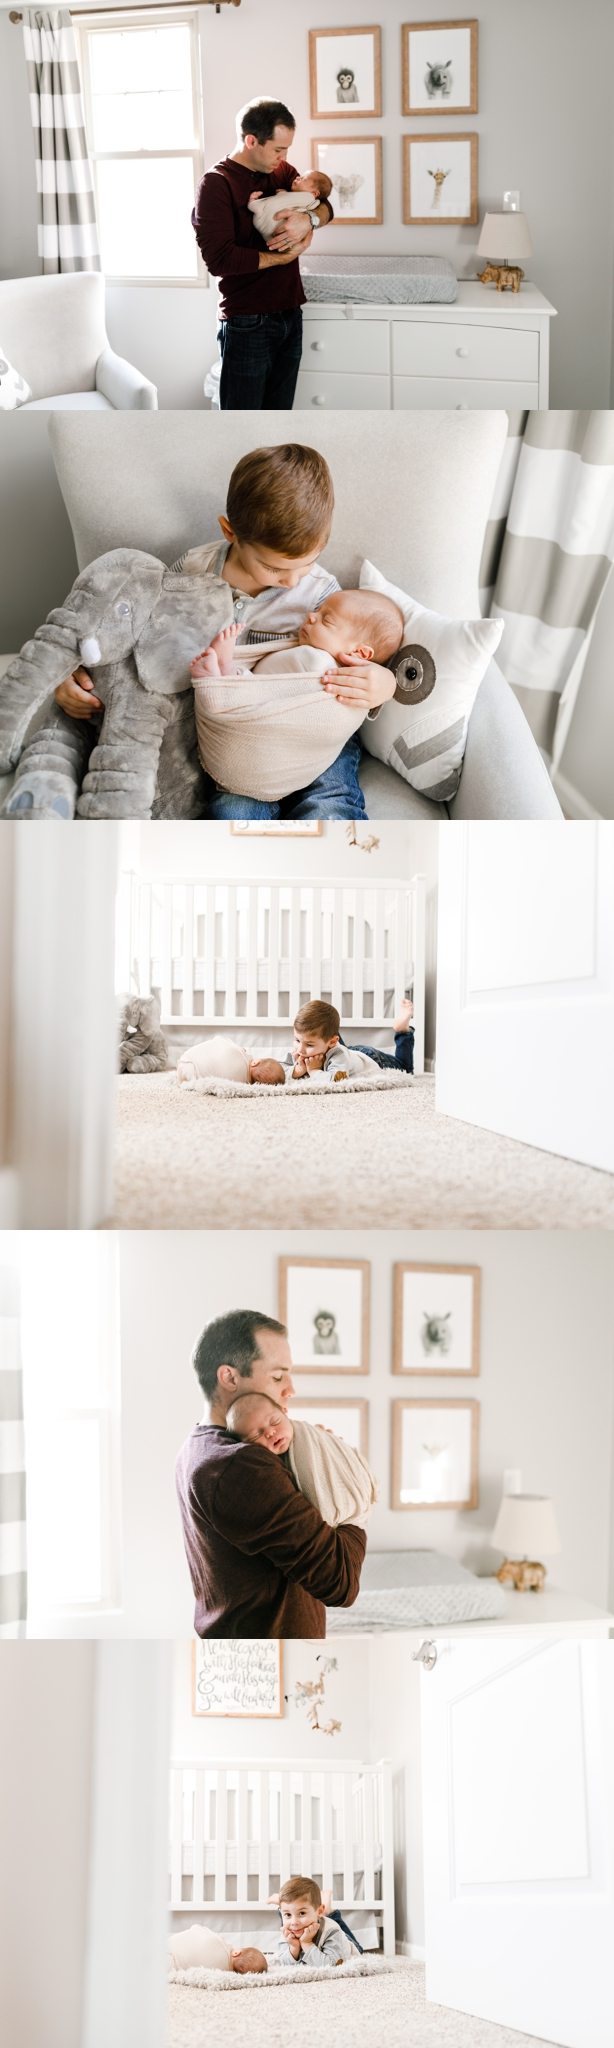 PARKER_NEWBORN2017-3078_BLOG.jpgchicago newborn lifestyle photographer baby brother jenny grimm photography